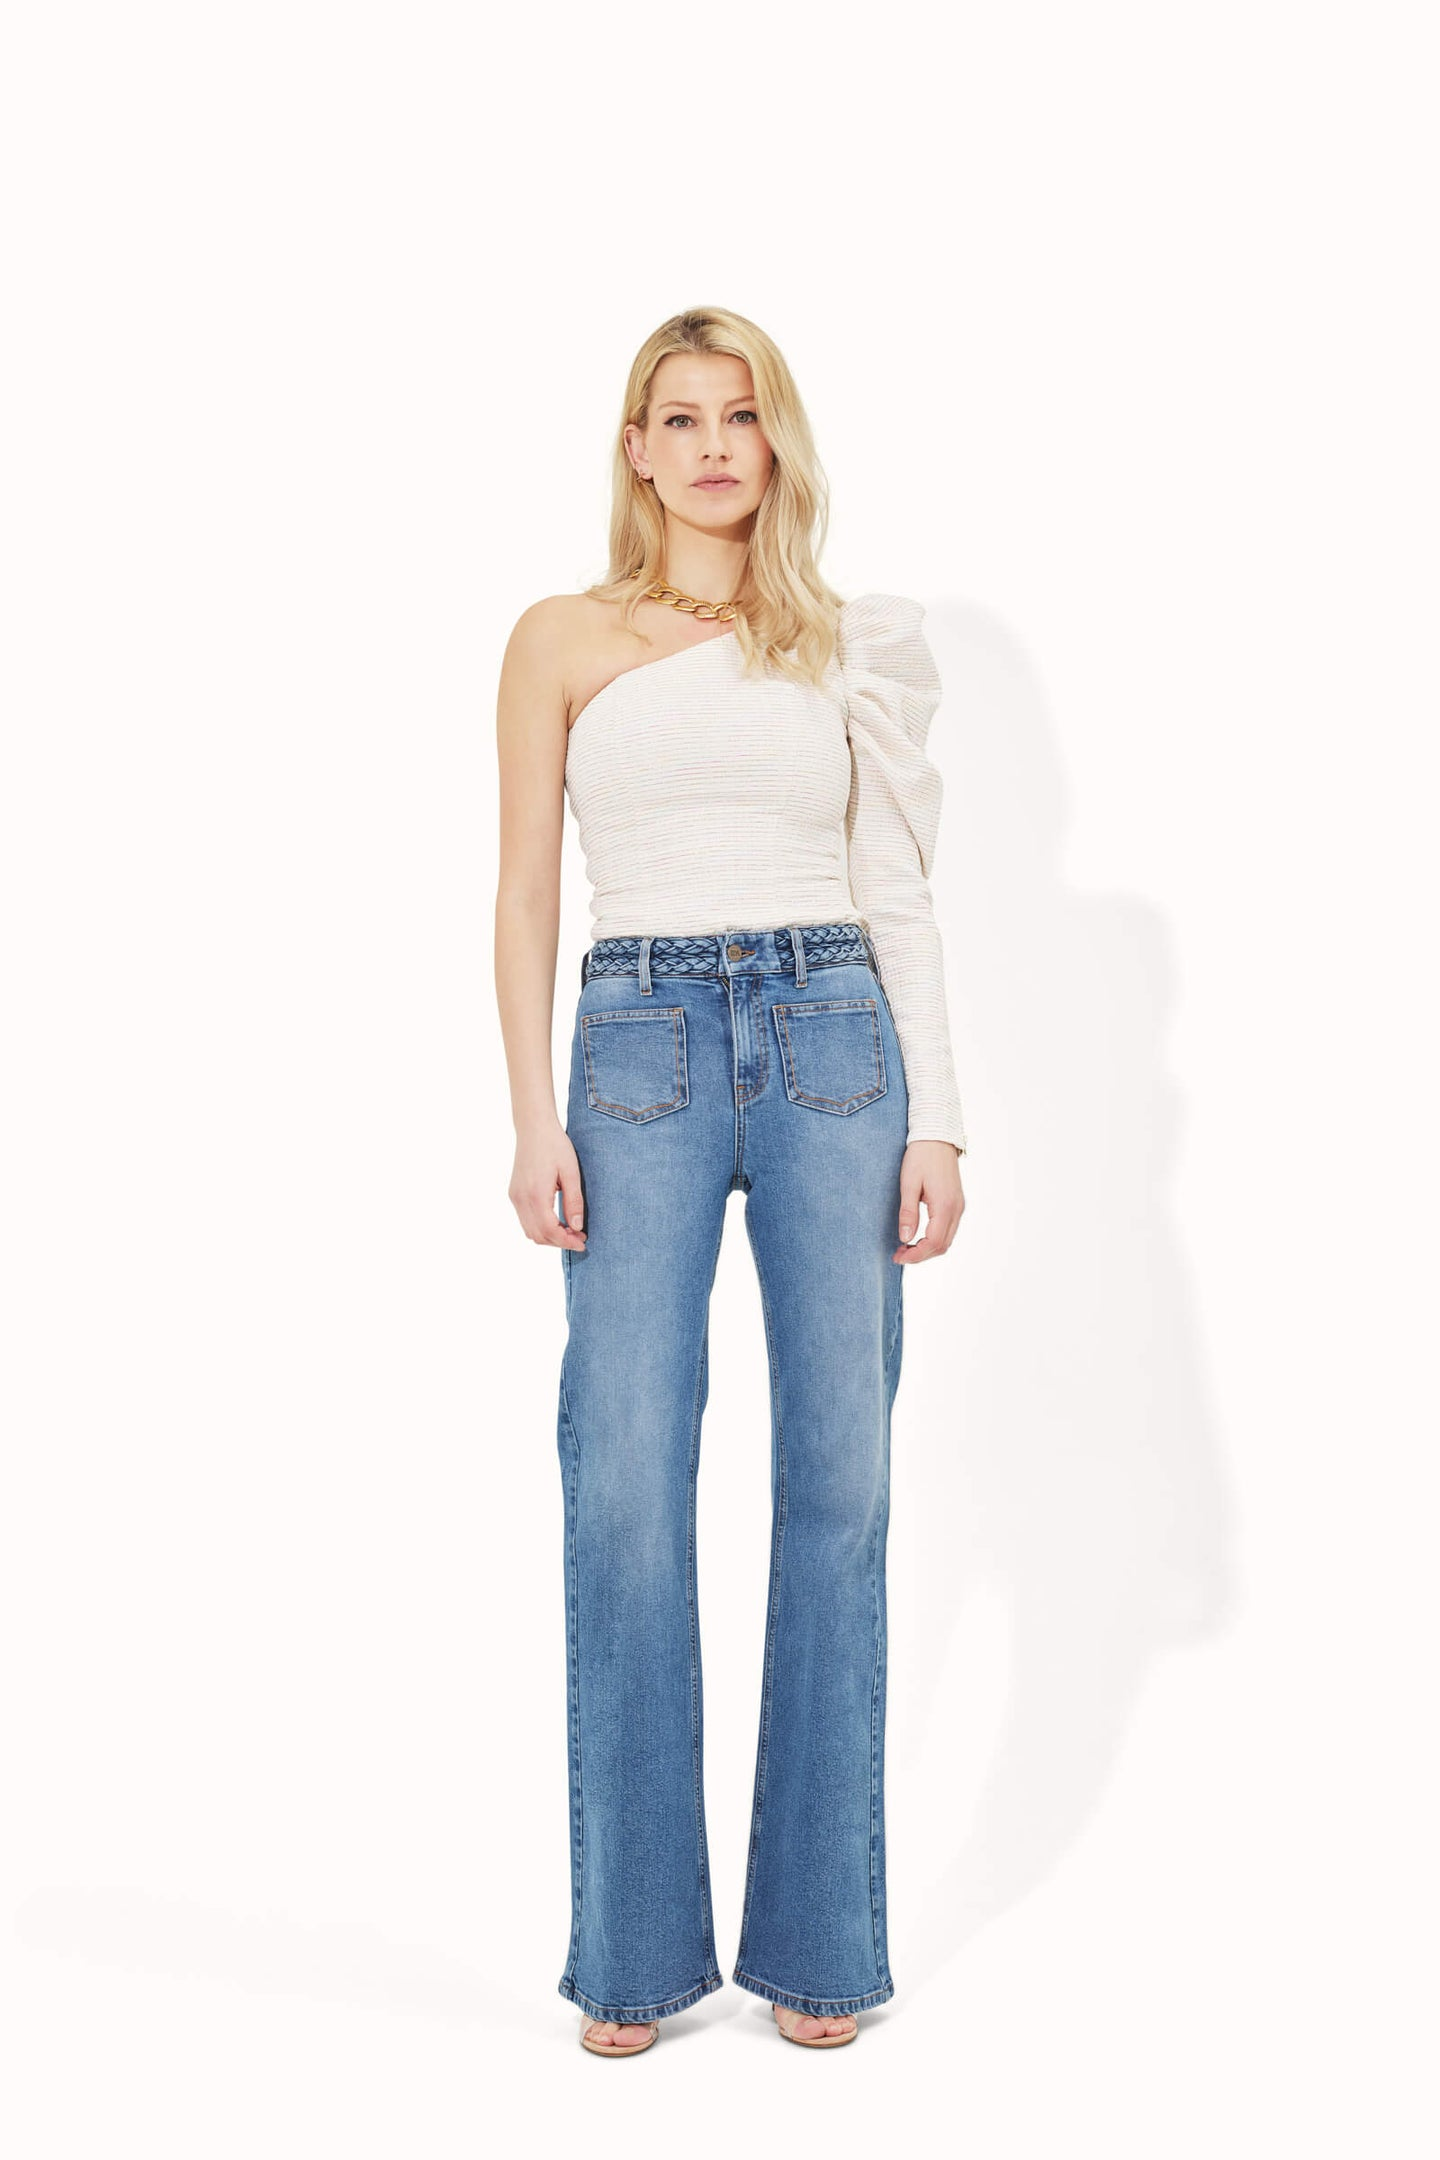 Trixie The High Top Plaited Waist Patch Pocket Flare - Transatlantic